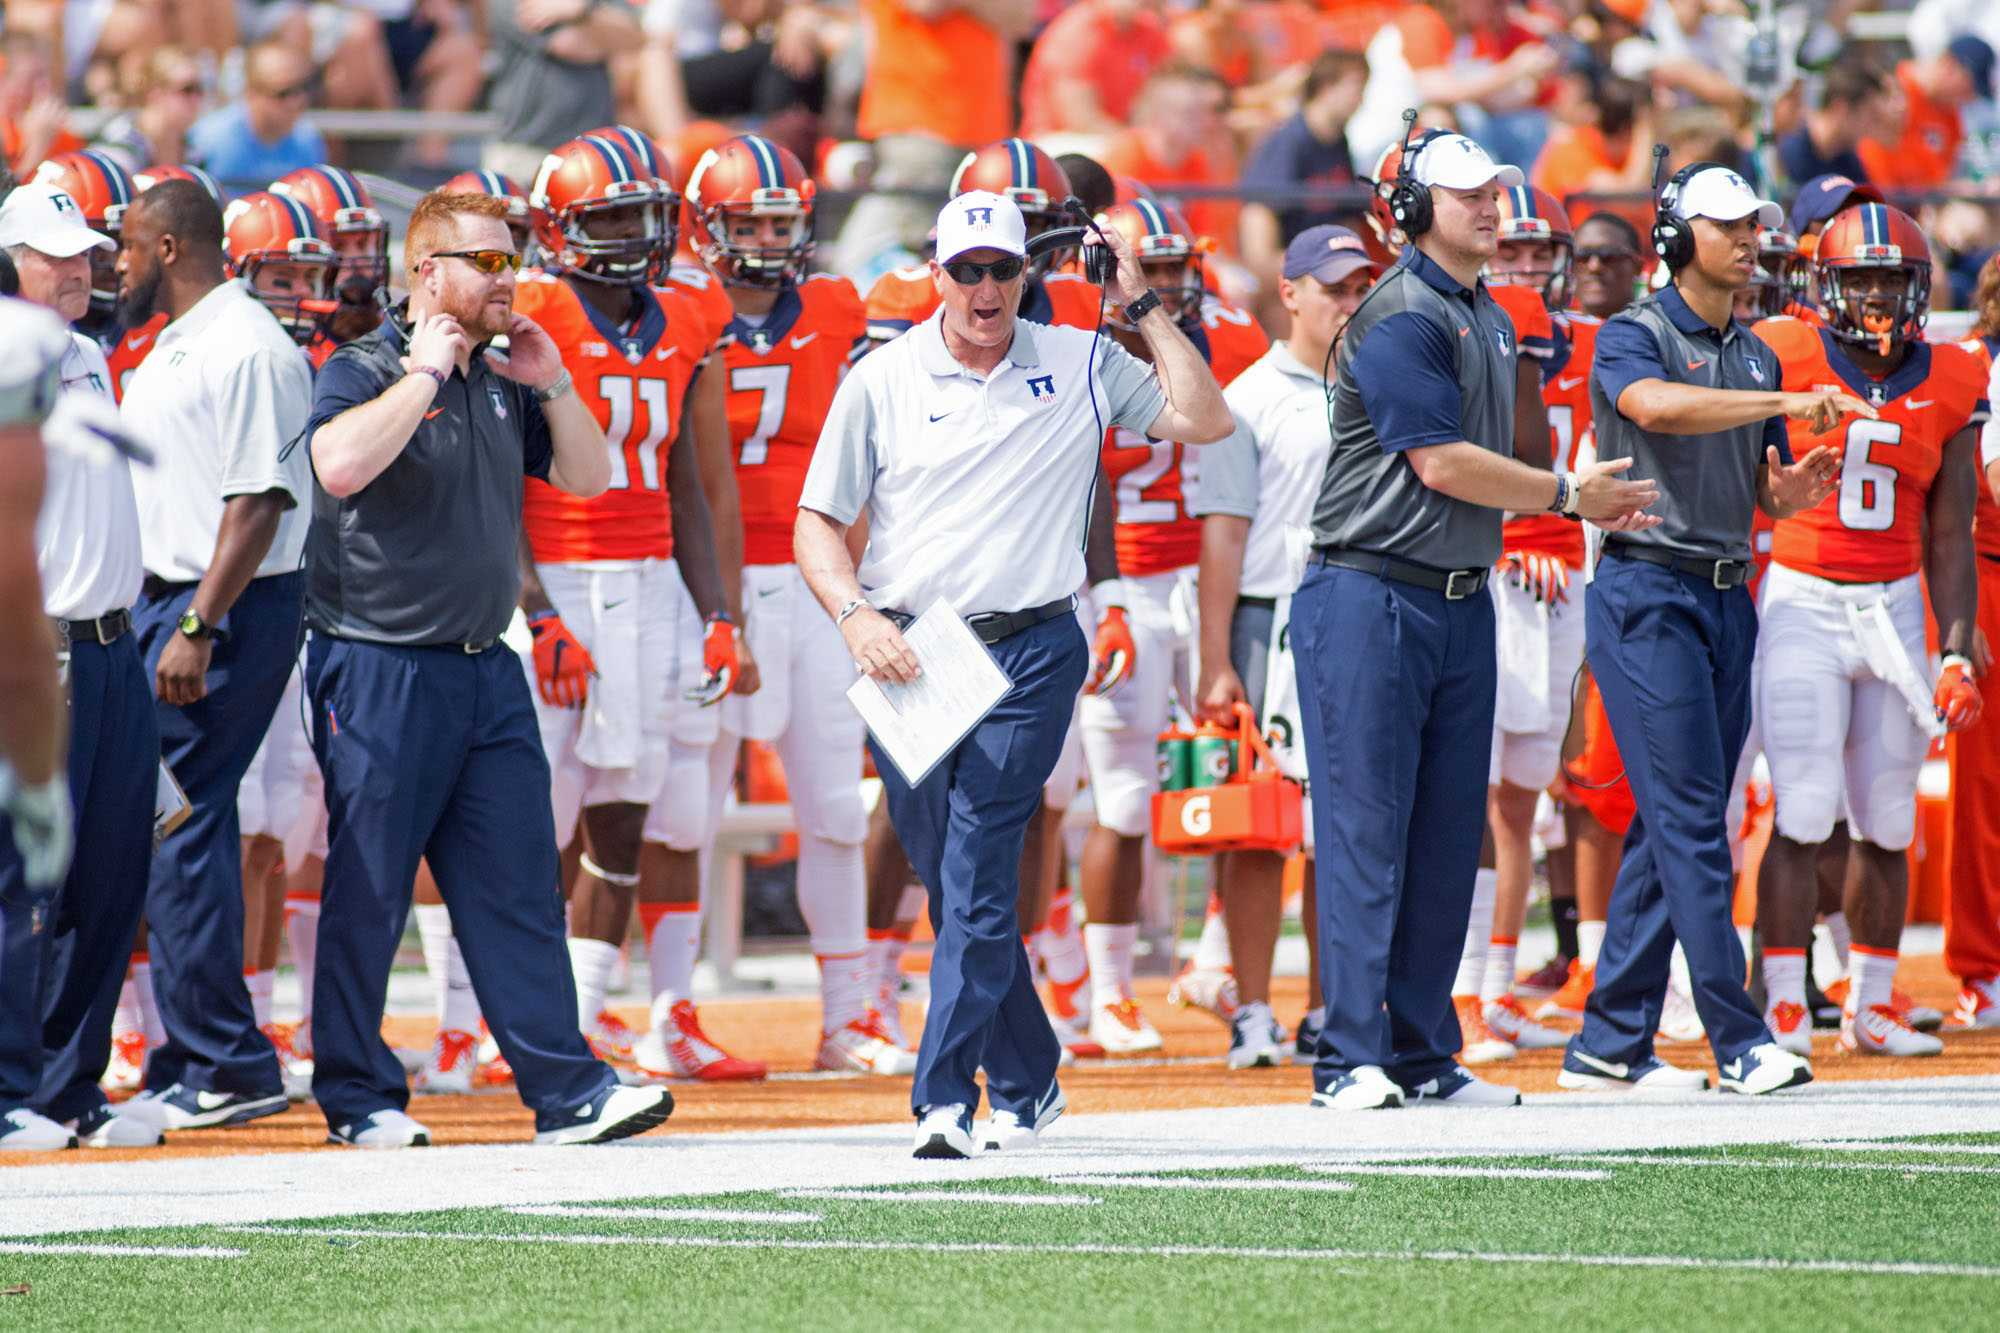 Illinois head football coach Bill Cubit gets fired up on the sideline during the game against Kent State at Memorial Field on Saturday, Sept. 5. Illinois won 52-3.